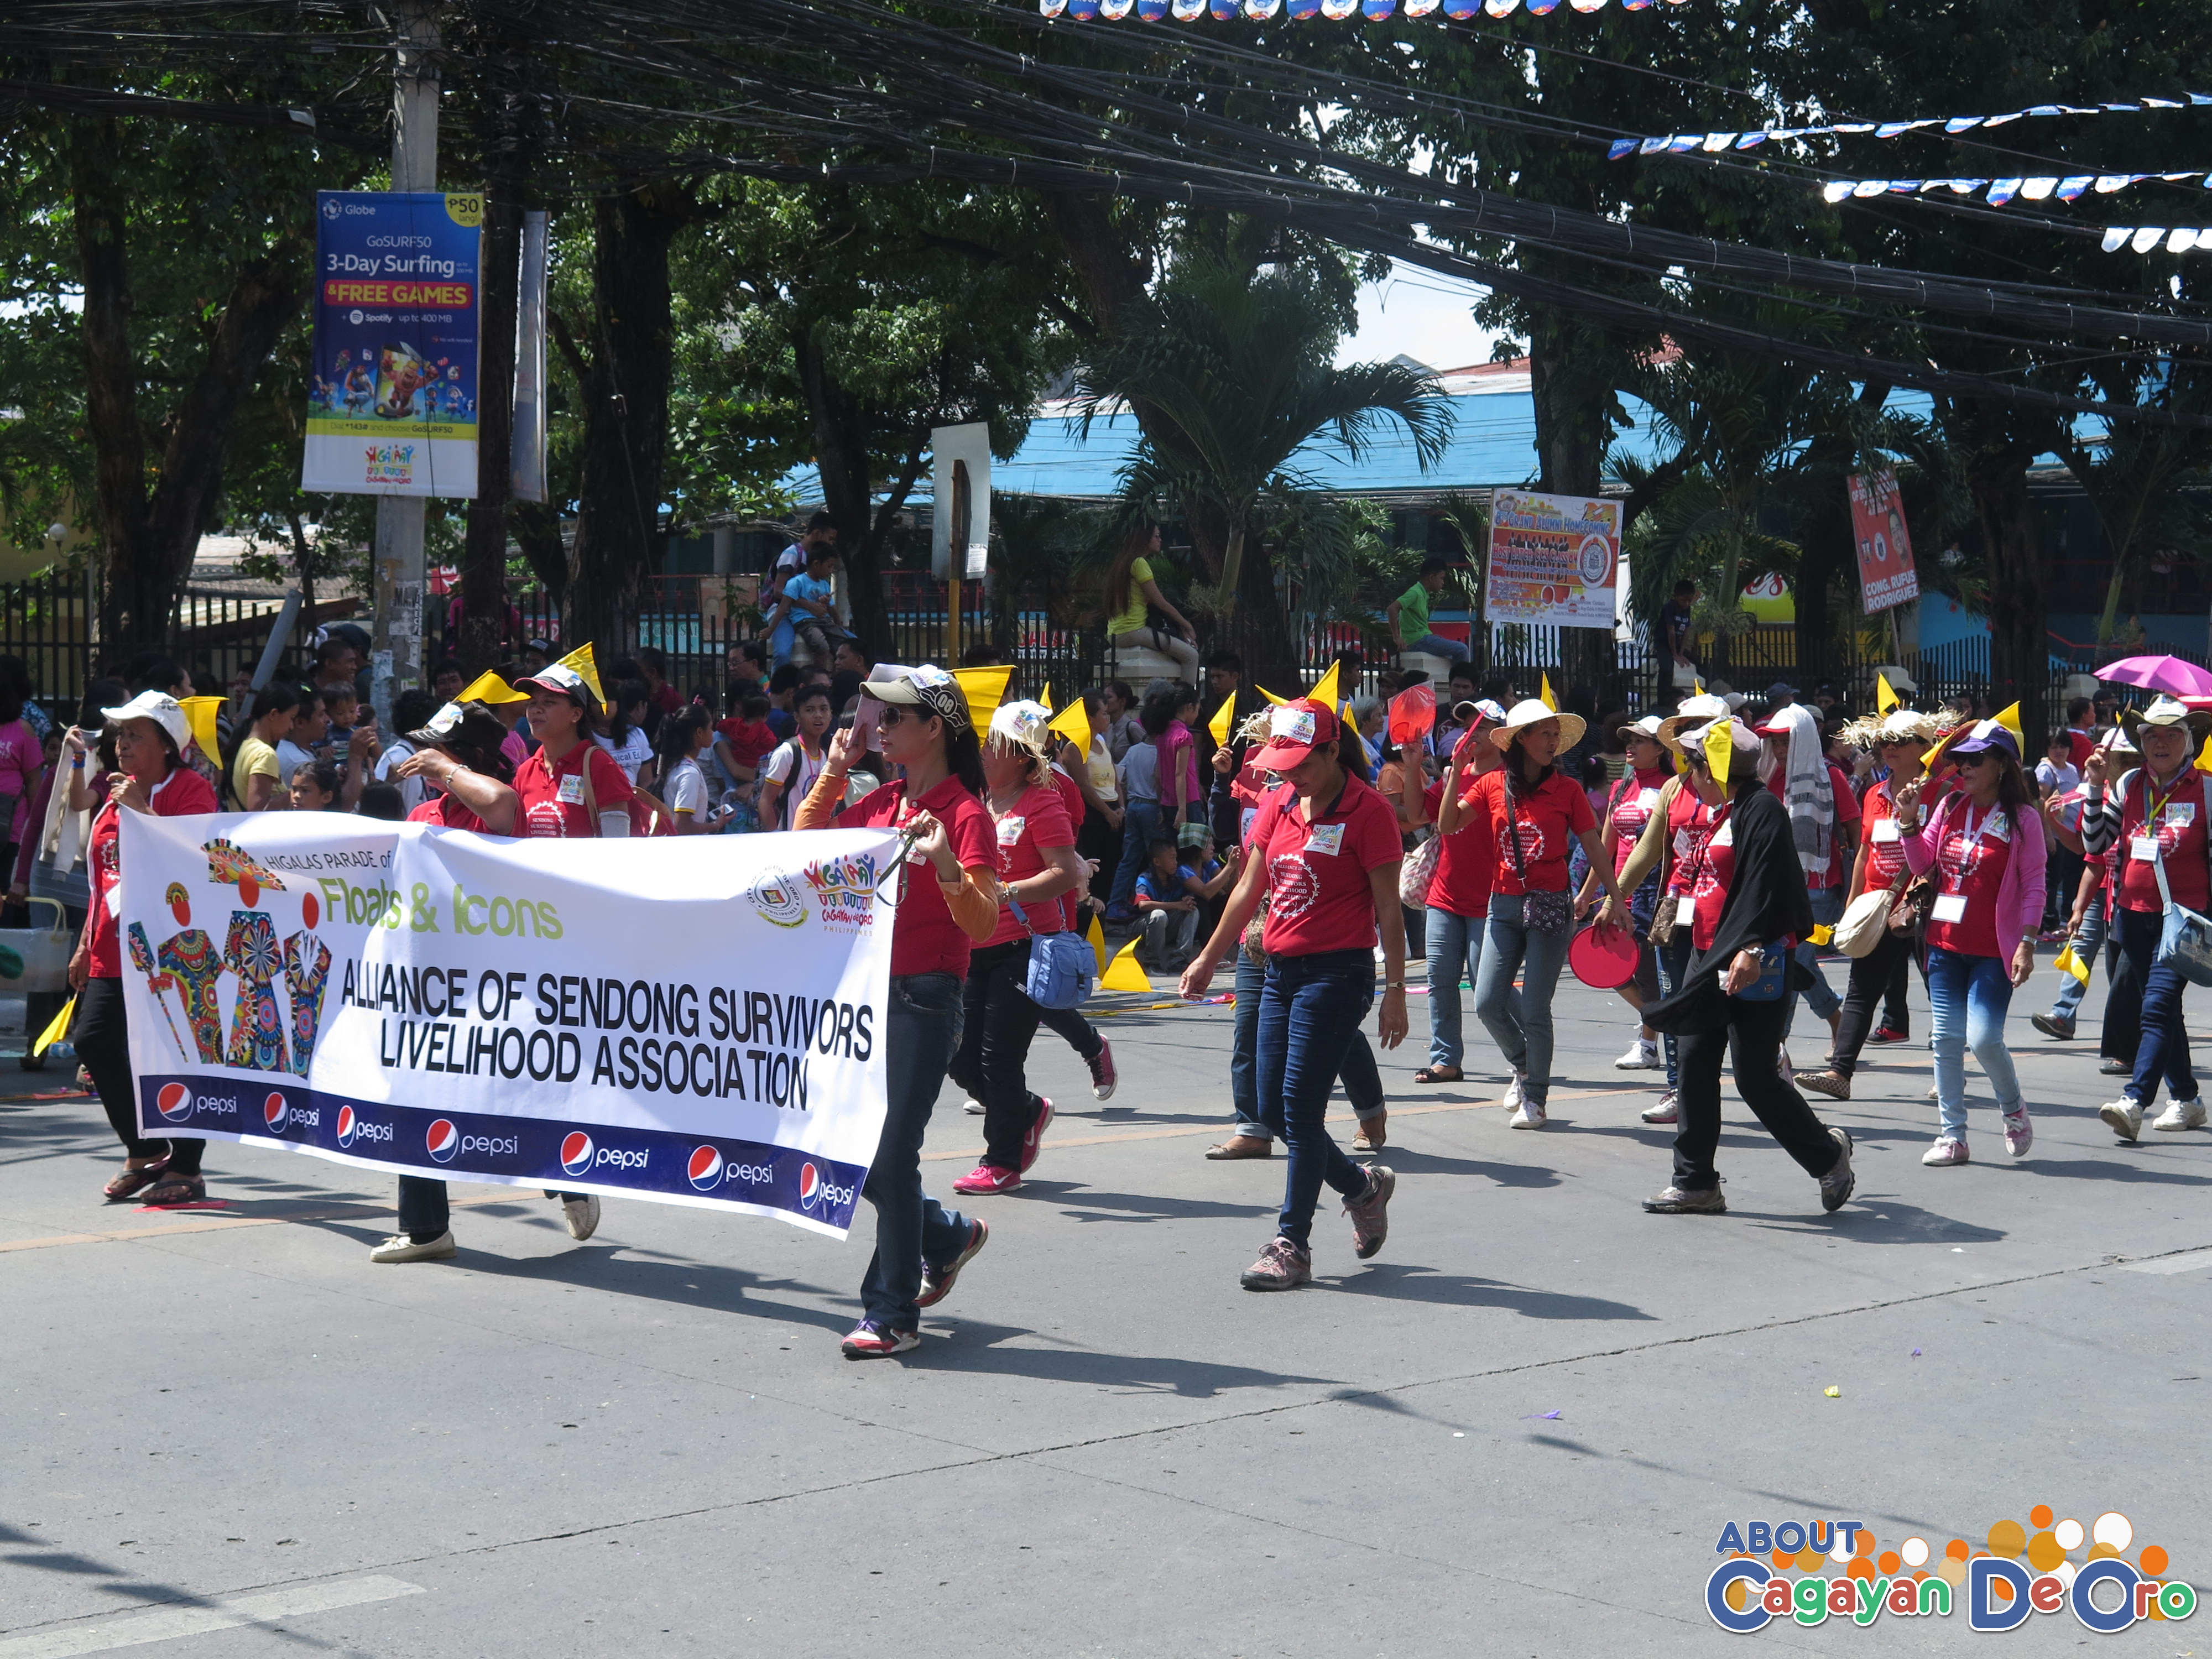 Alliance of Sendong Survivor Livelihood Association at Cagayan de Oro The Higalas Parade of Floats and Icons 2015